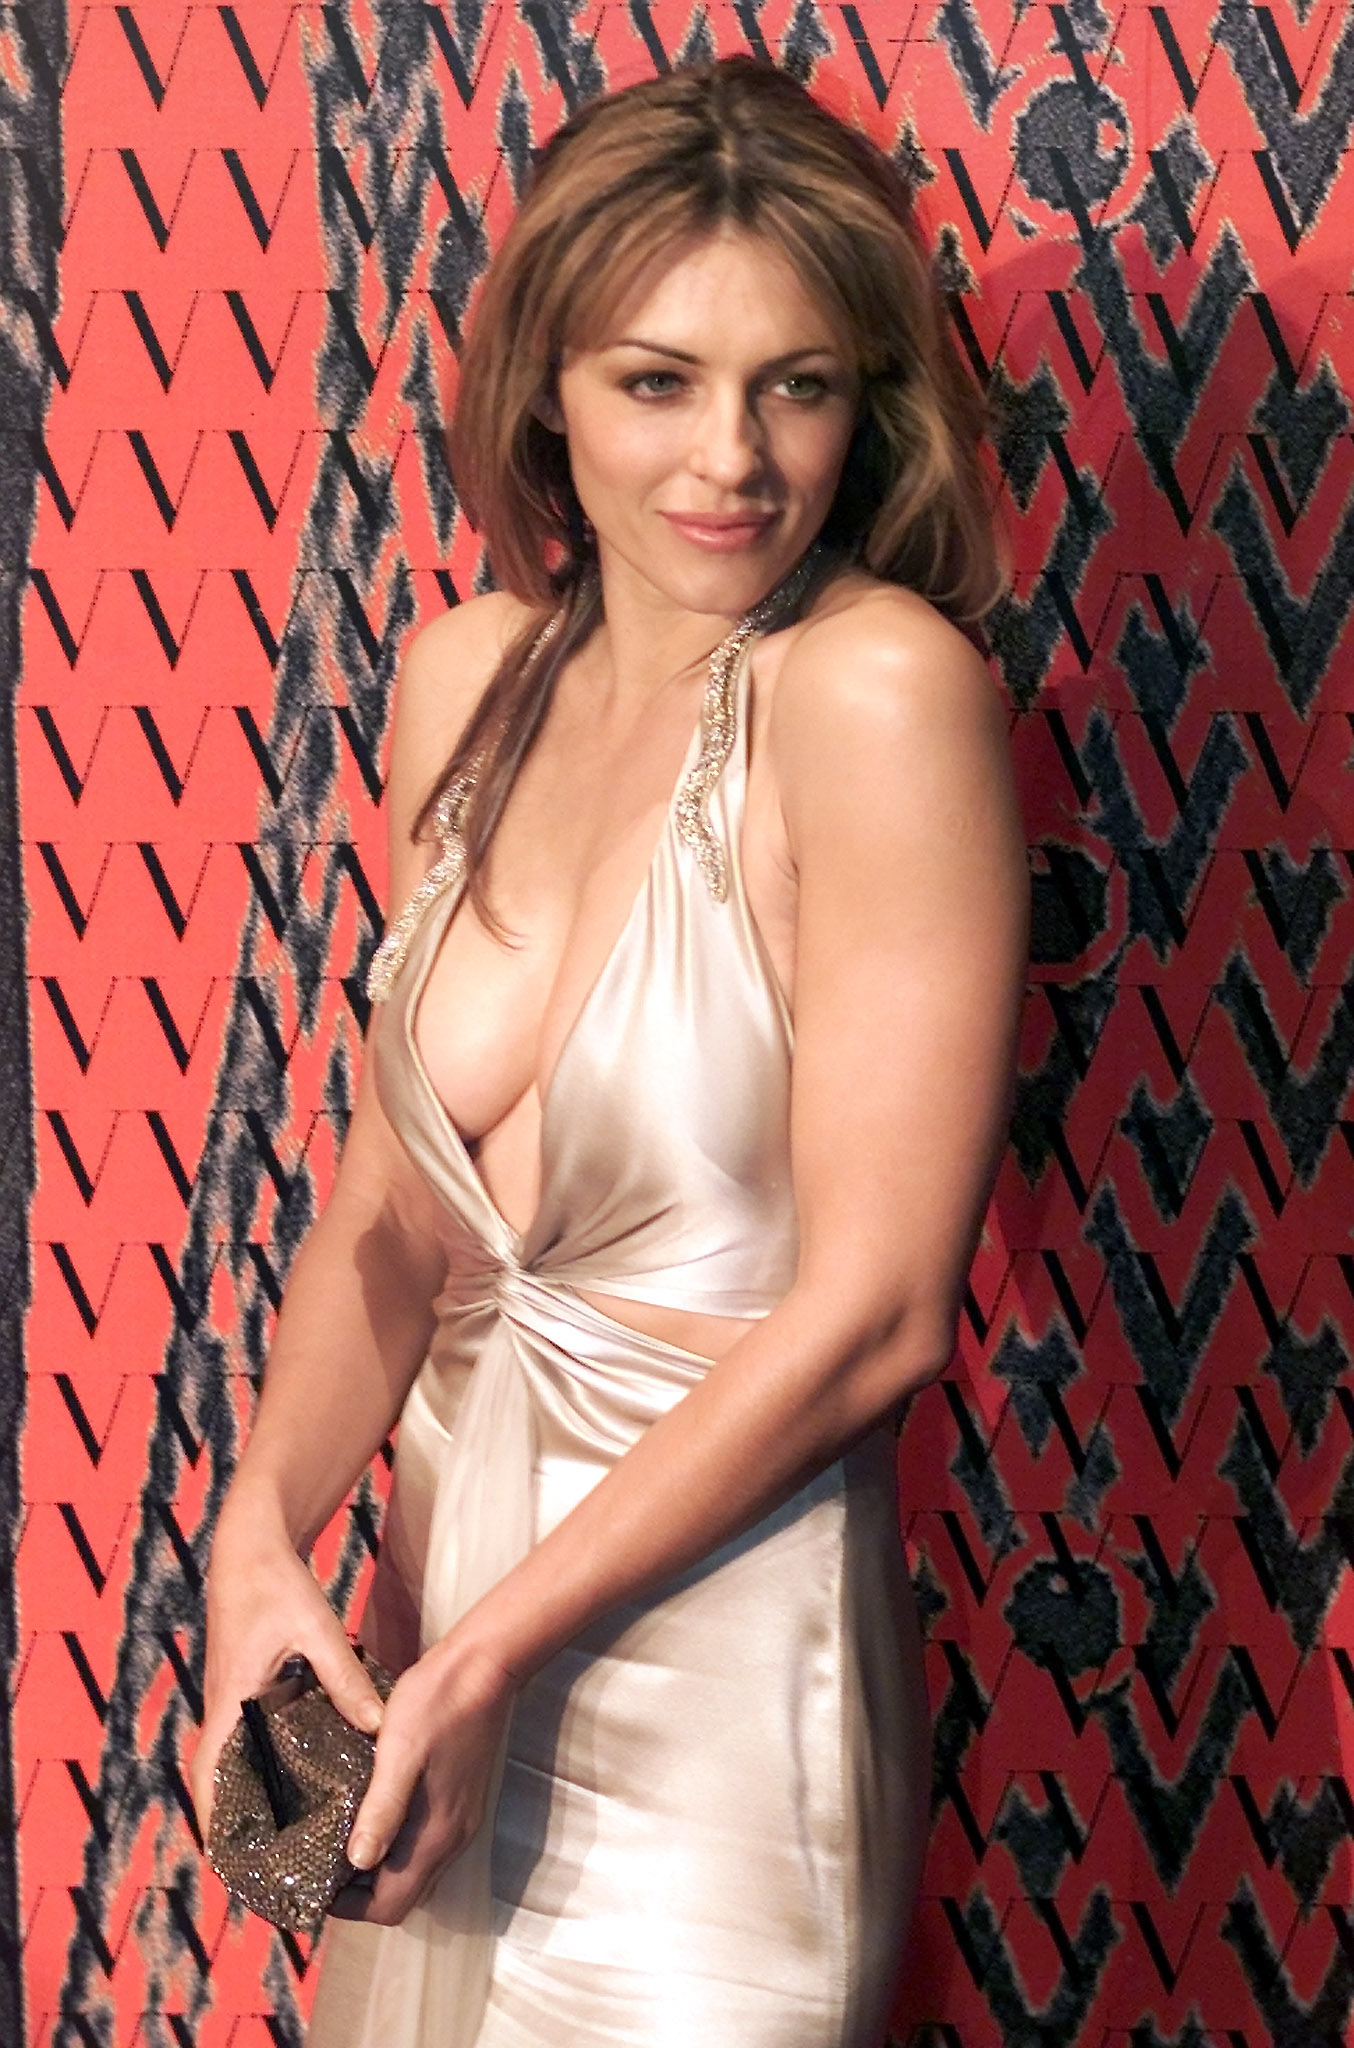 Actress Elizabeth Hurley arrives at a benefit gala for the Children's Action Network honoring fashion designer Valentino November 17, 2000 at the Pacific Design Center in West Hollywood California.  SSM/JP